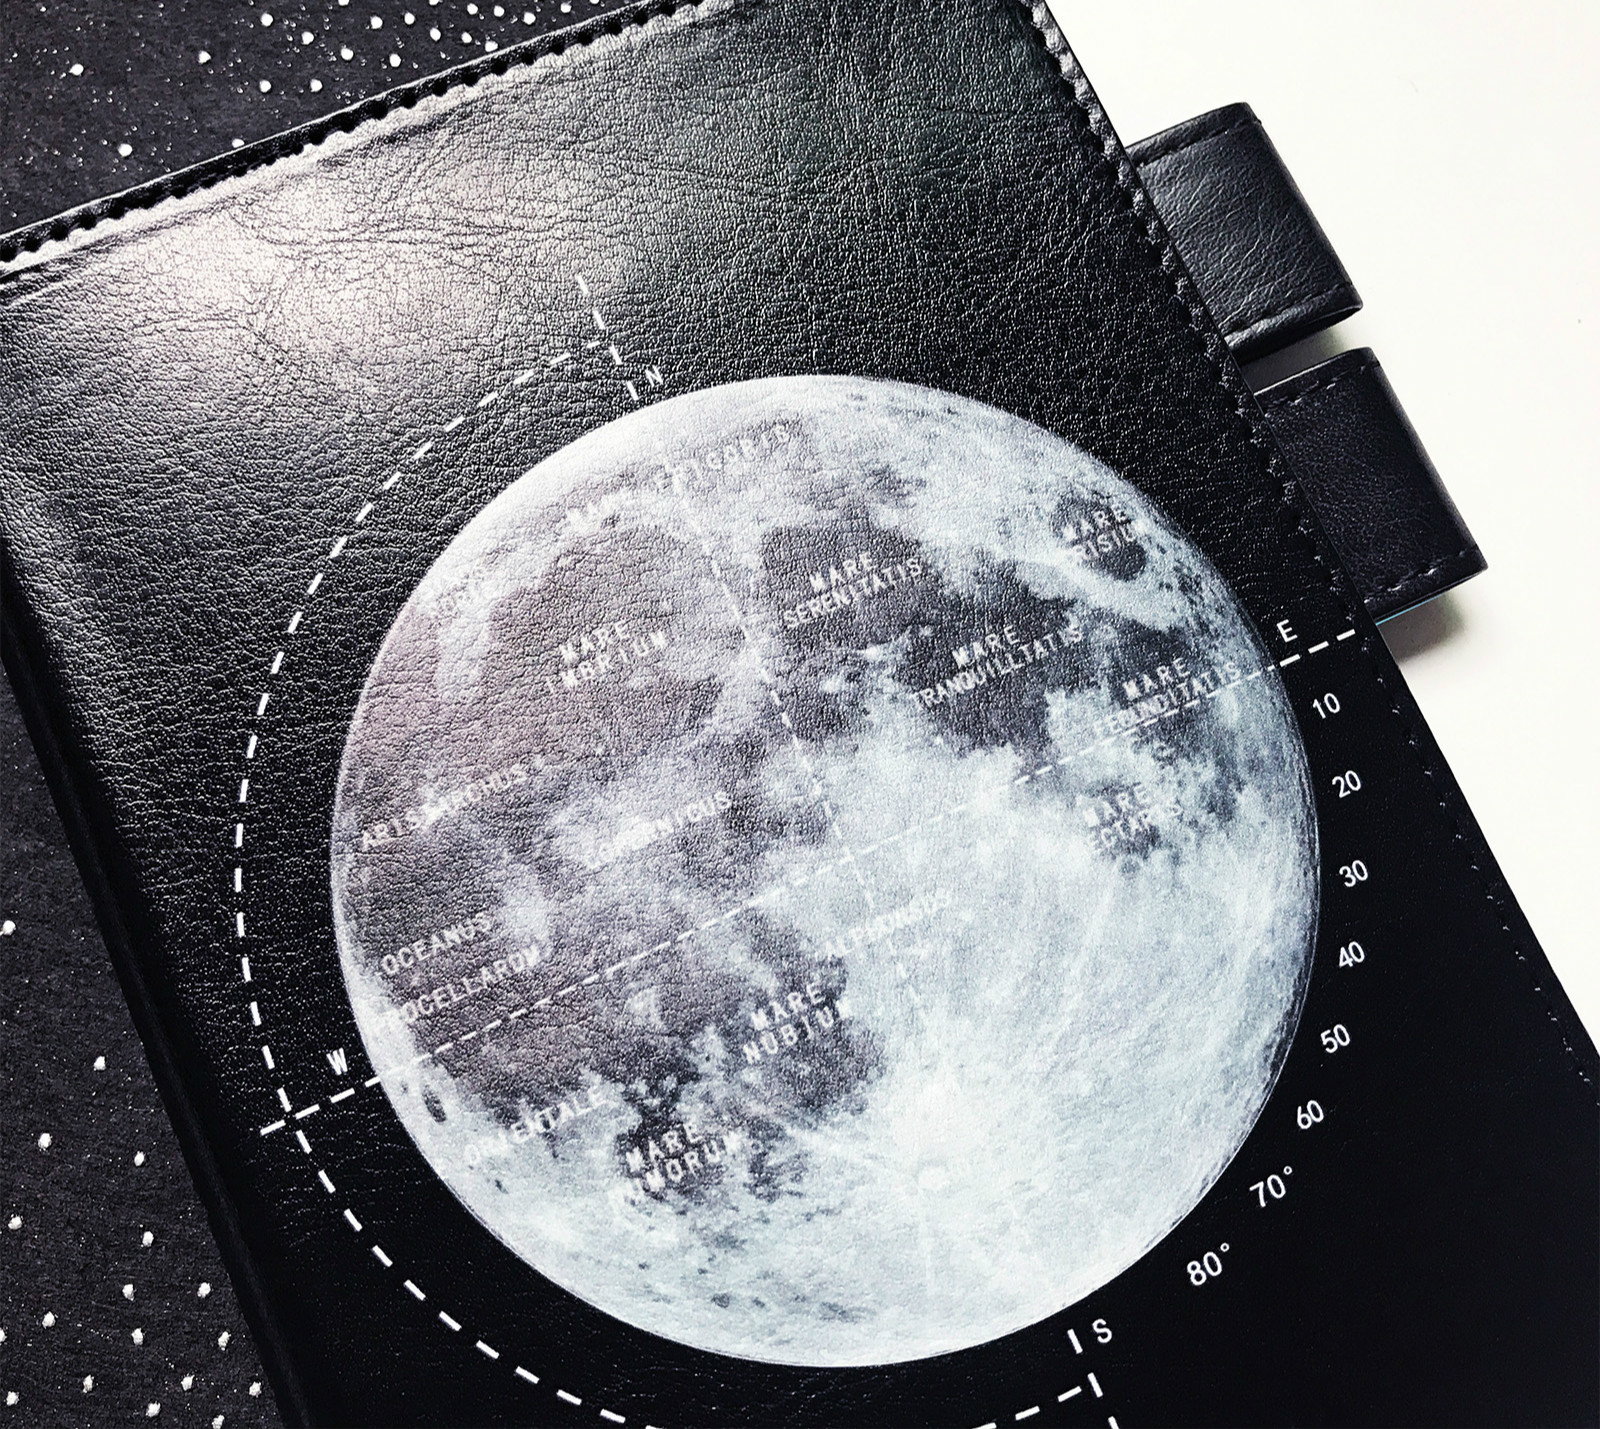 The Moon Journal Cover Suit For Standard A5 A6 Fitted Paper Book Free Shipping 2020 DIY Planner Supplies Gift